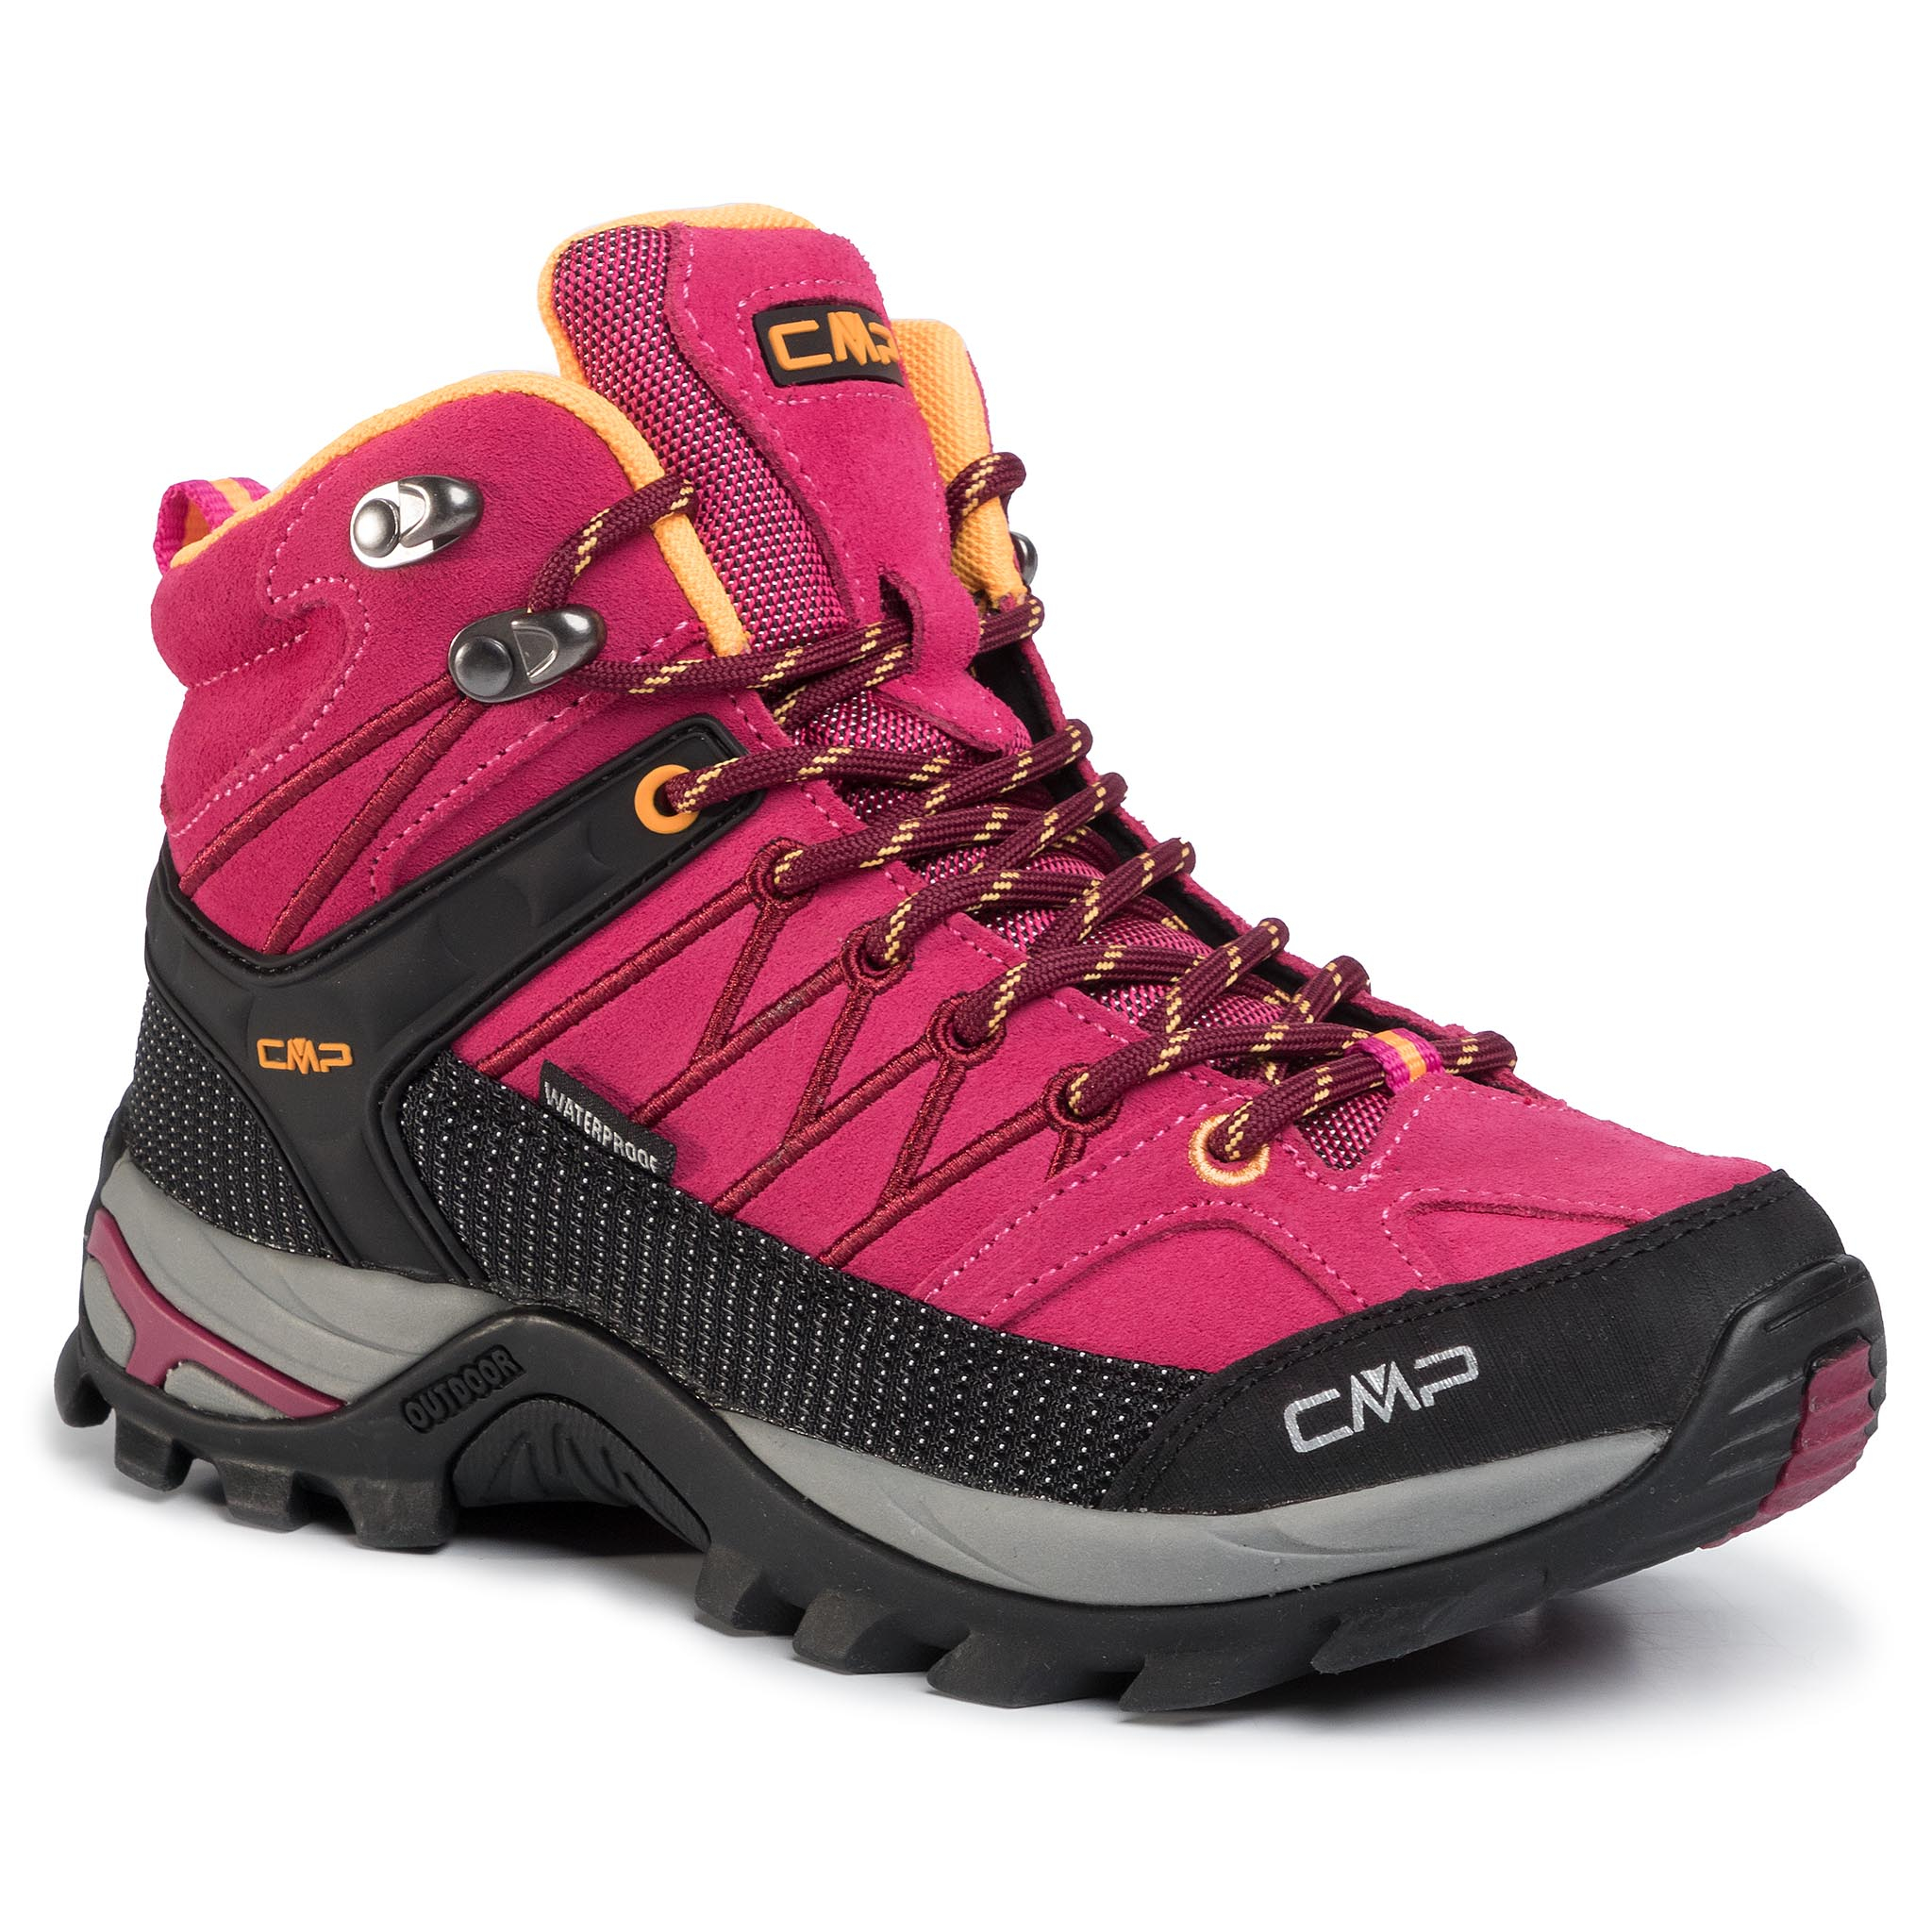 Trekkings Cmp - Rigel Mid Wmn Trekking Shoes Wp 3q12946 Bouganville/Goji 06he imagine epantofi.ro 2021